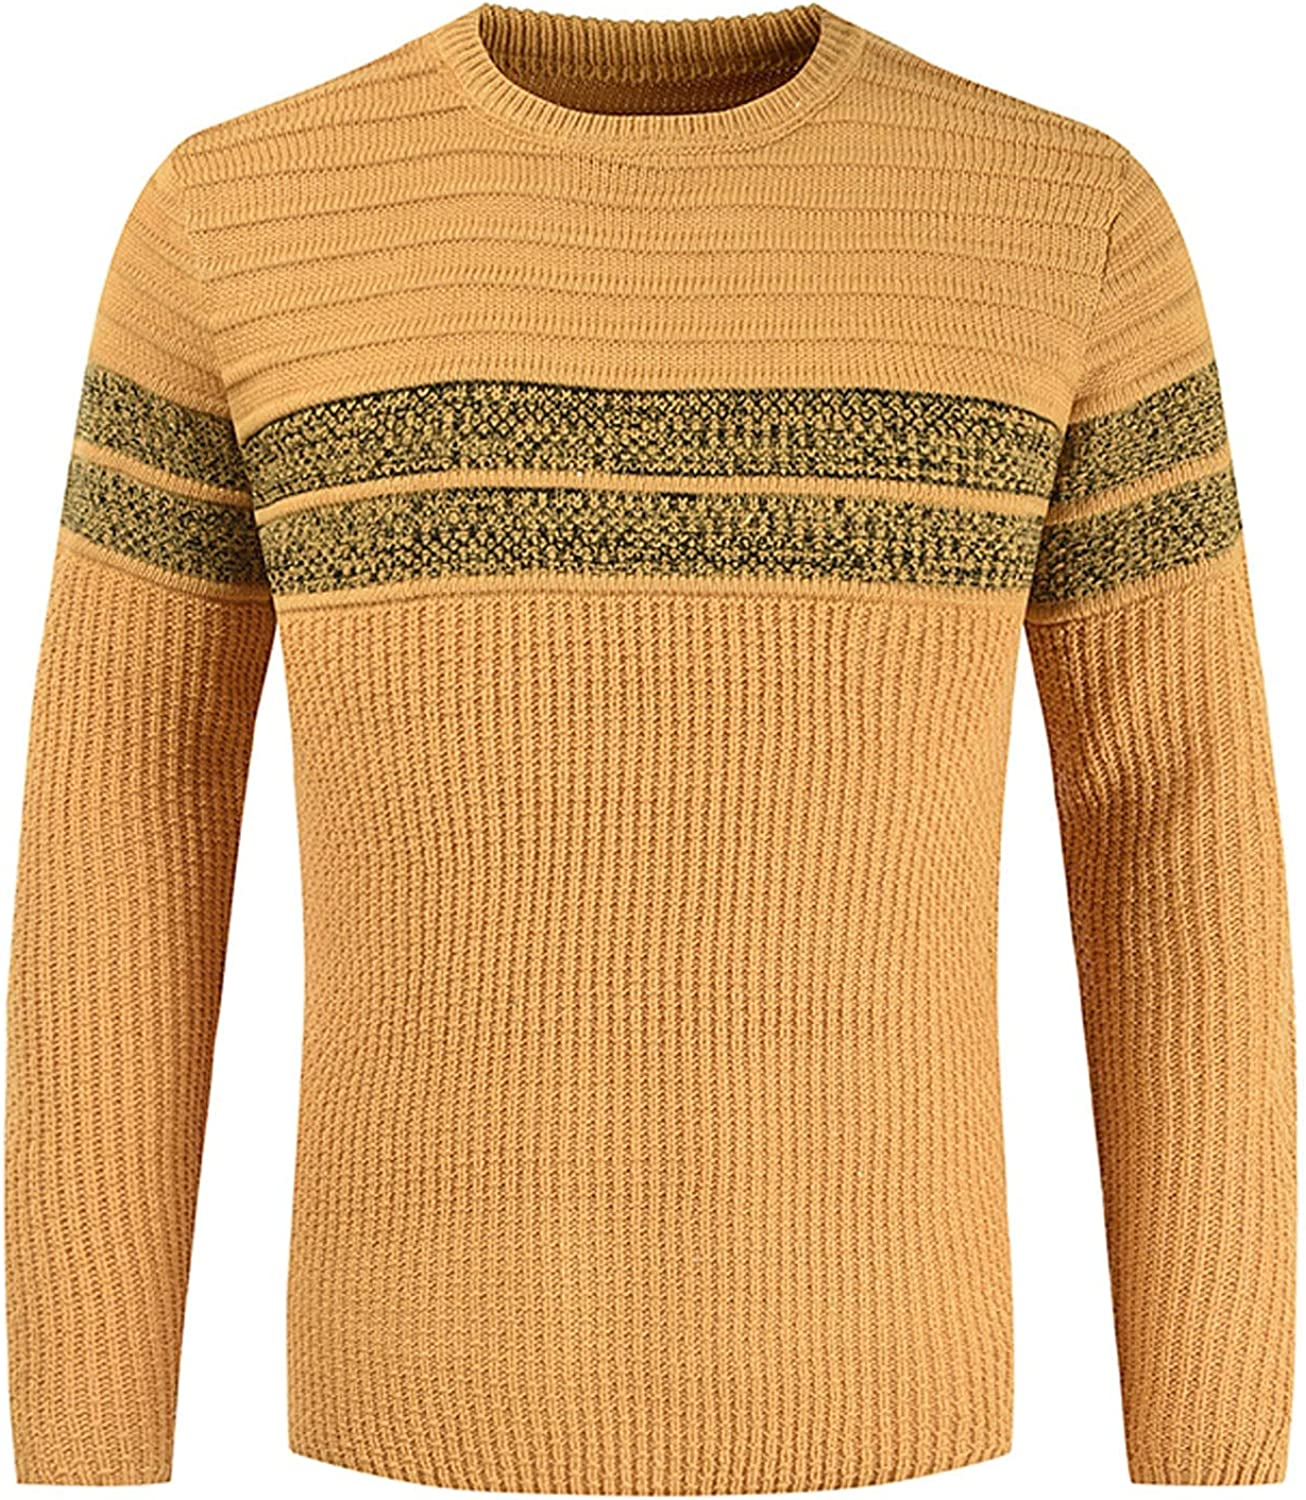 XXBR Knitted Sweater for Mens, Fall Winter Basic Crewneck Pullover Solid Warm Casual Bottoming Jumper Tops